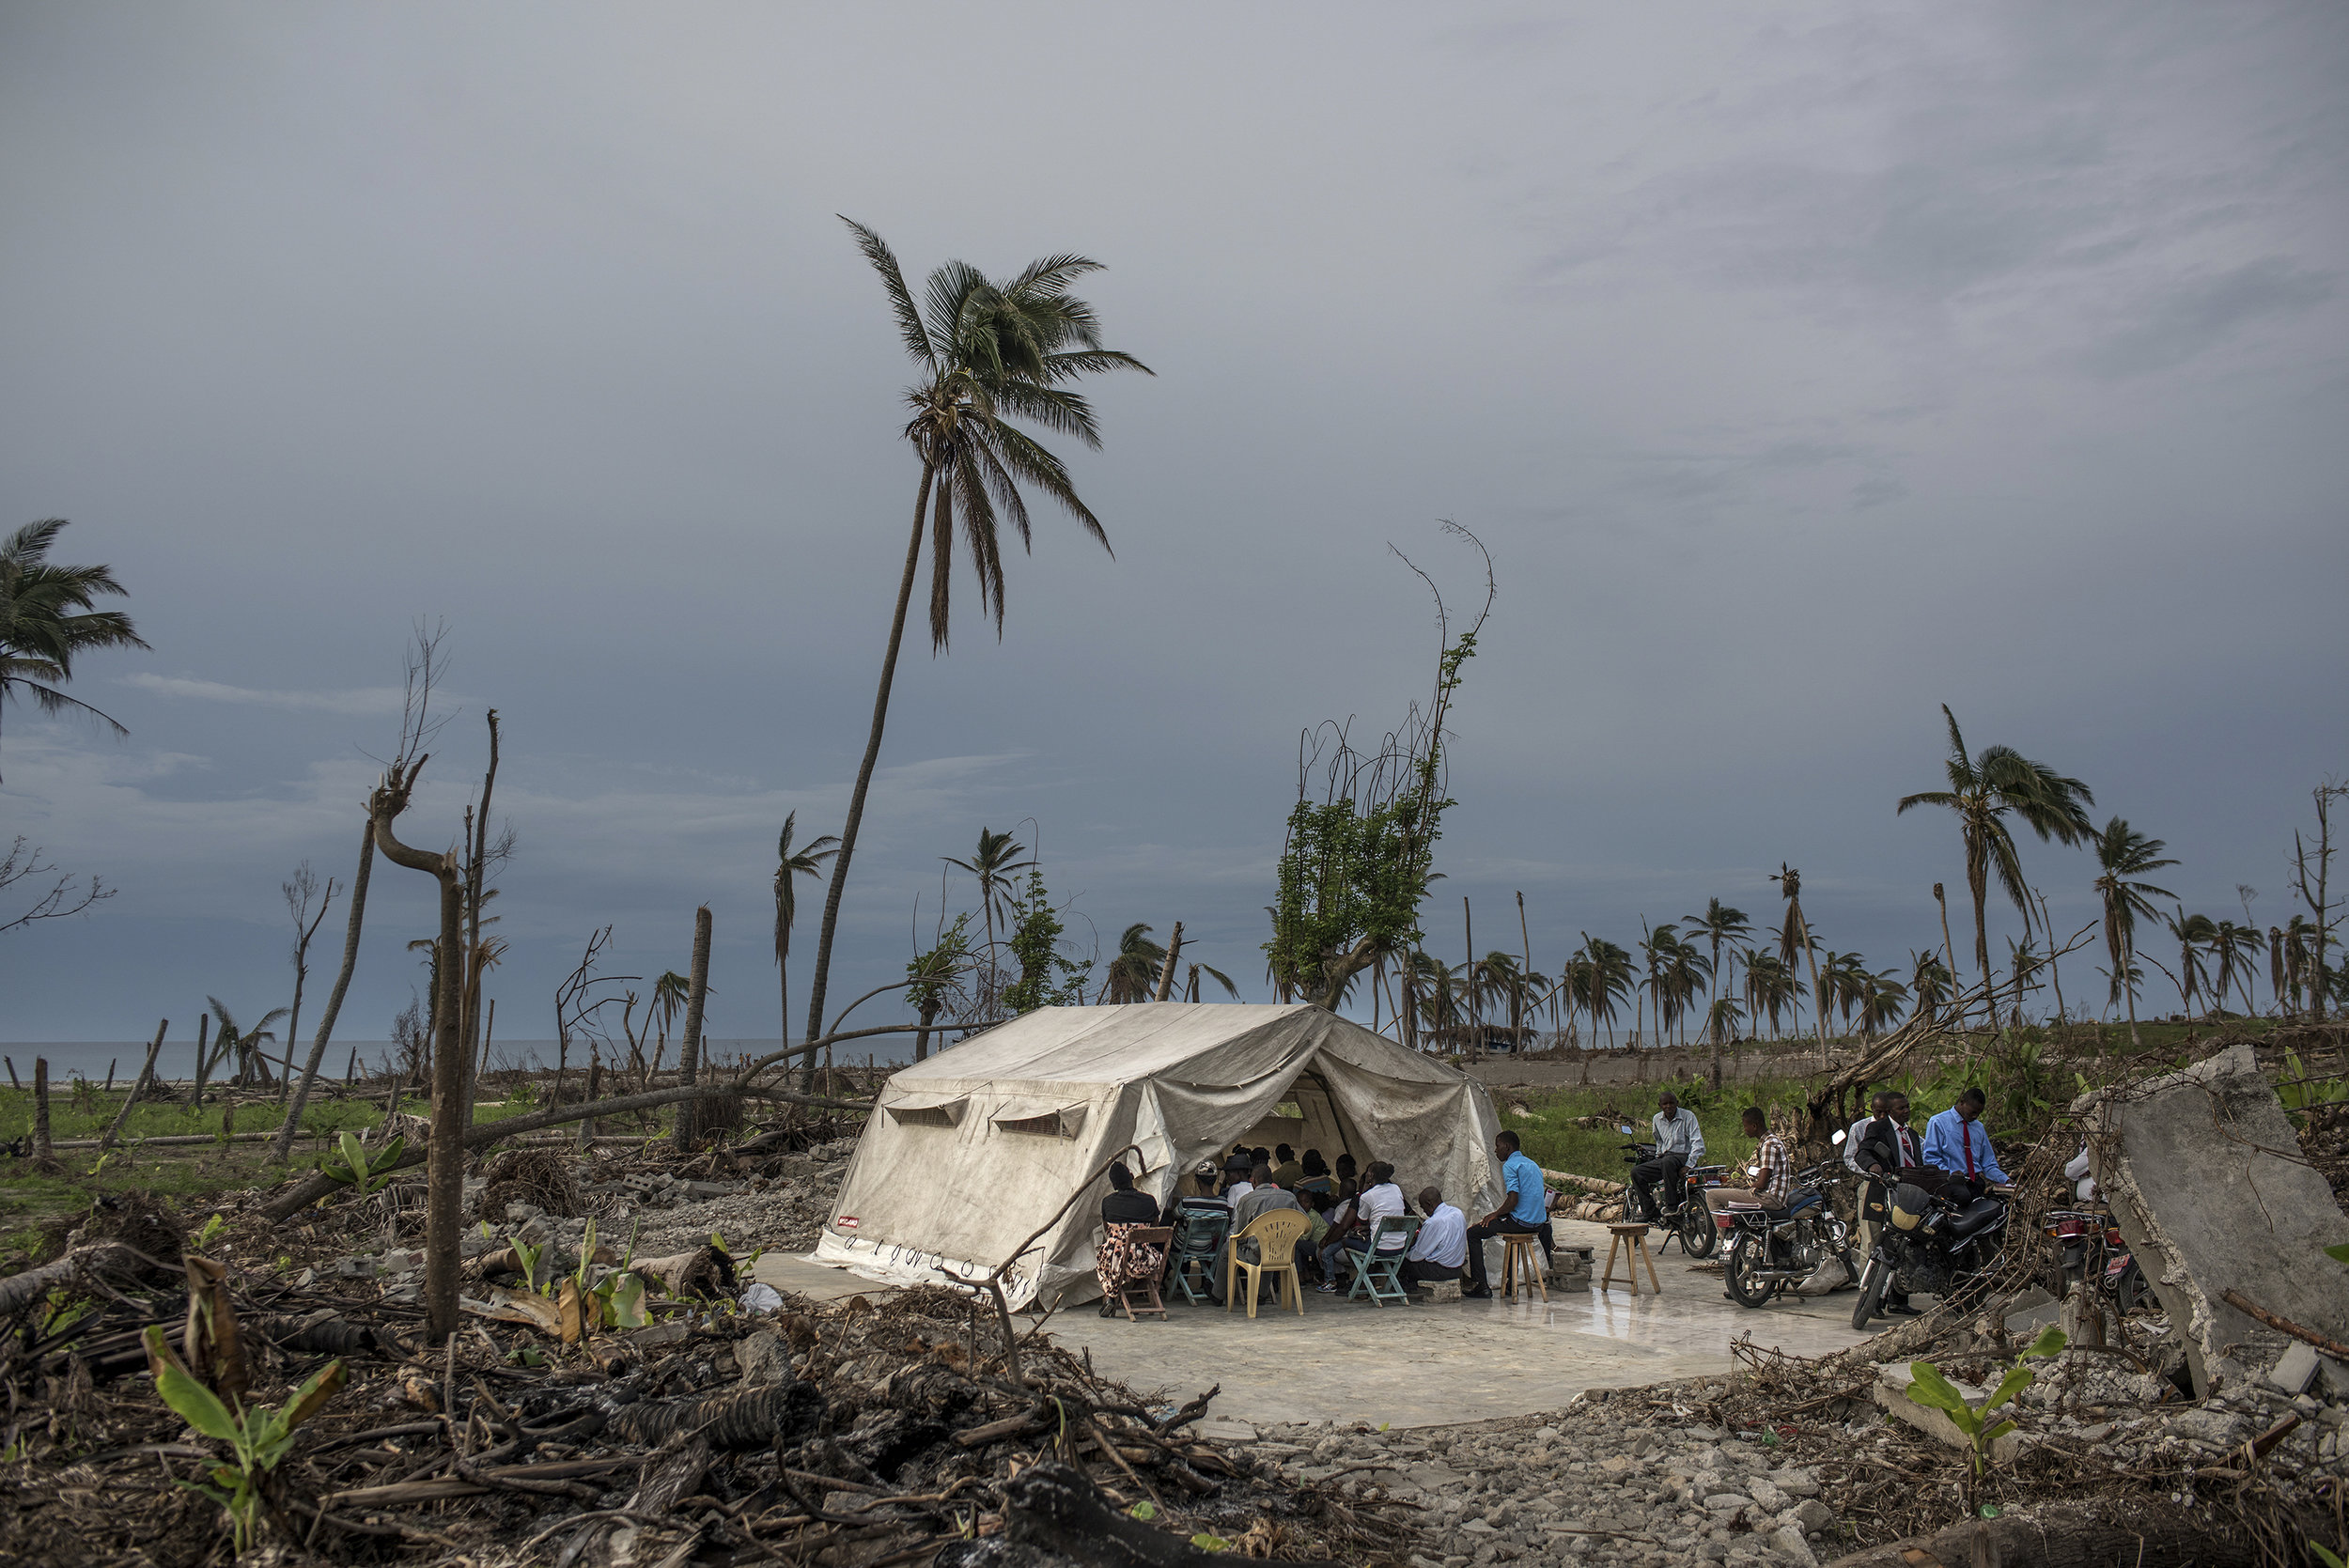 Haiti, Roche A Bateau, 19 November 2016, The Elise Adventure Morija Church was swept away during Hurricane Matthew. The parishioners still hold services on the foundation of the church, under a tent.